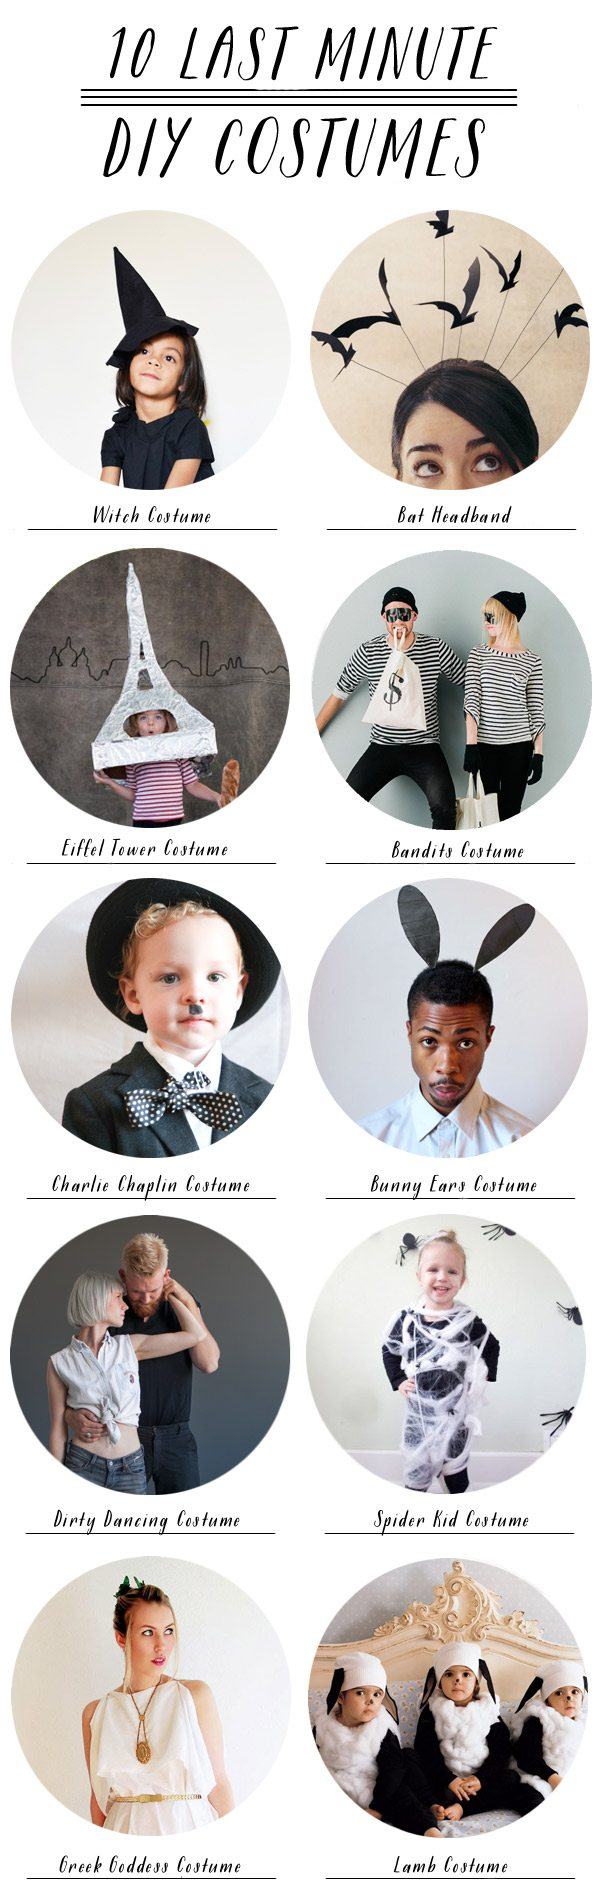 10 Last Minute Halloween Costumes from @cydconverse